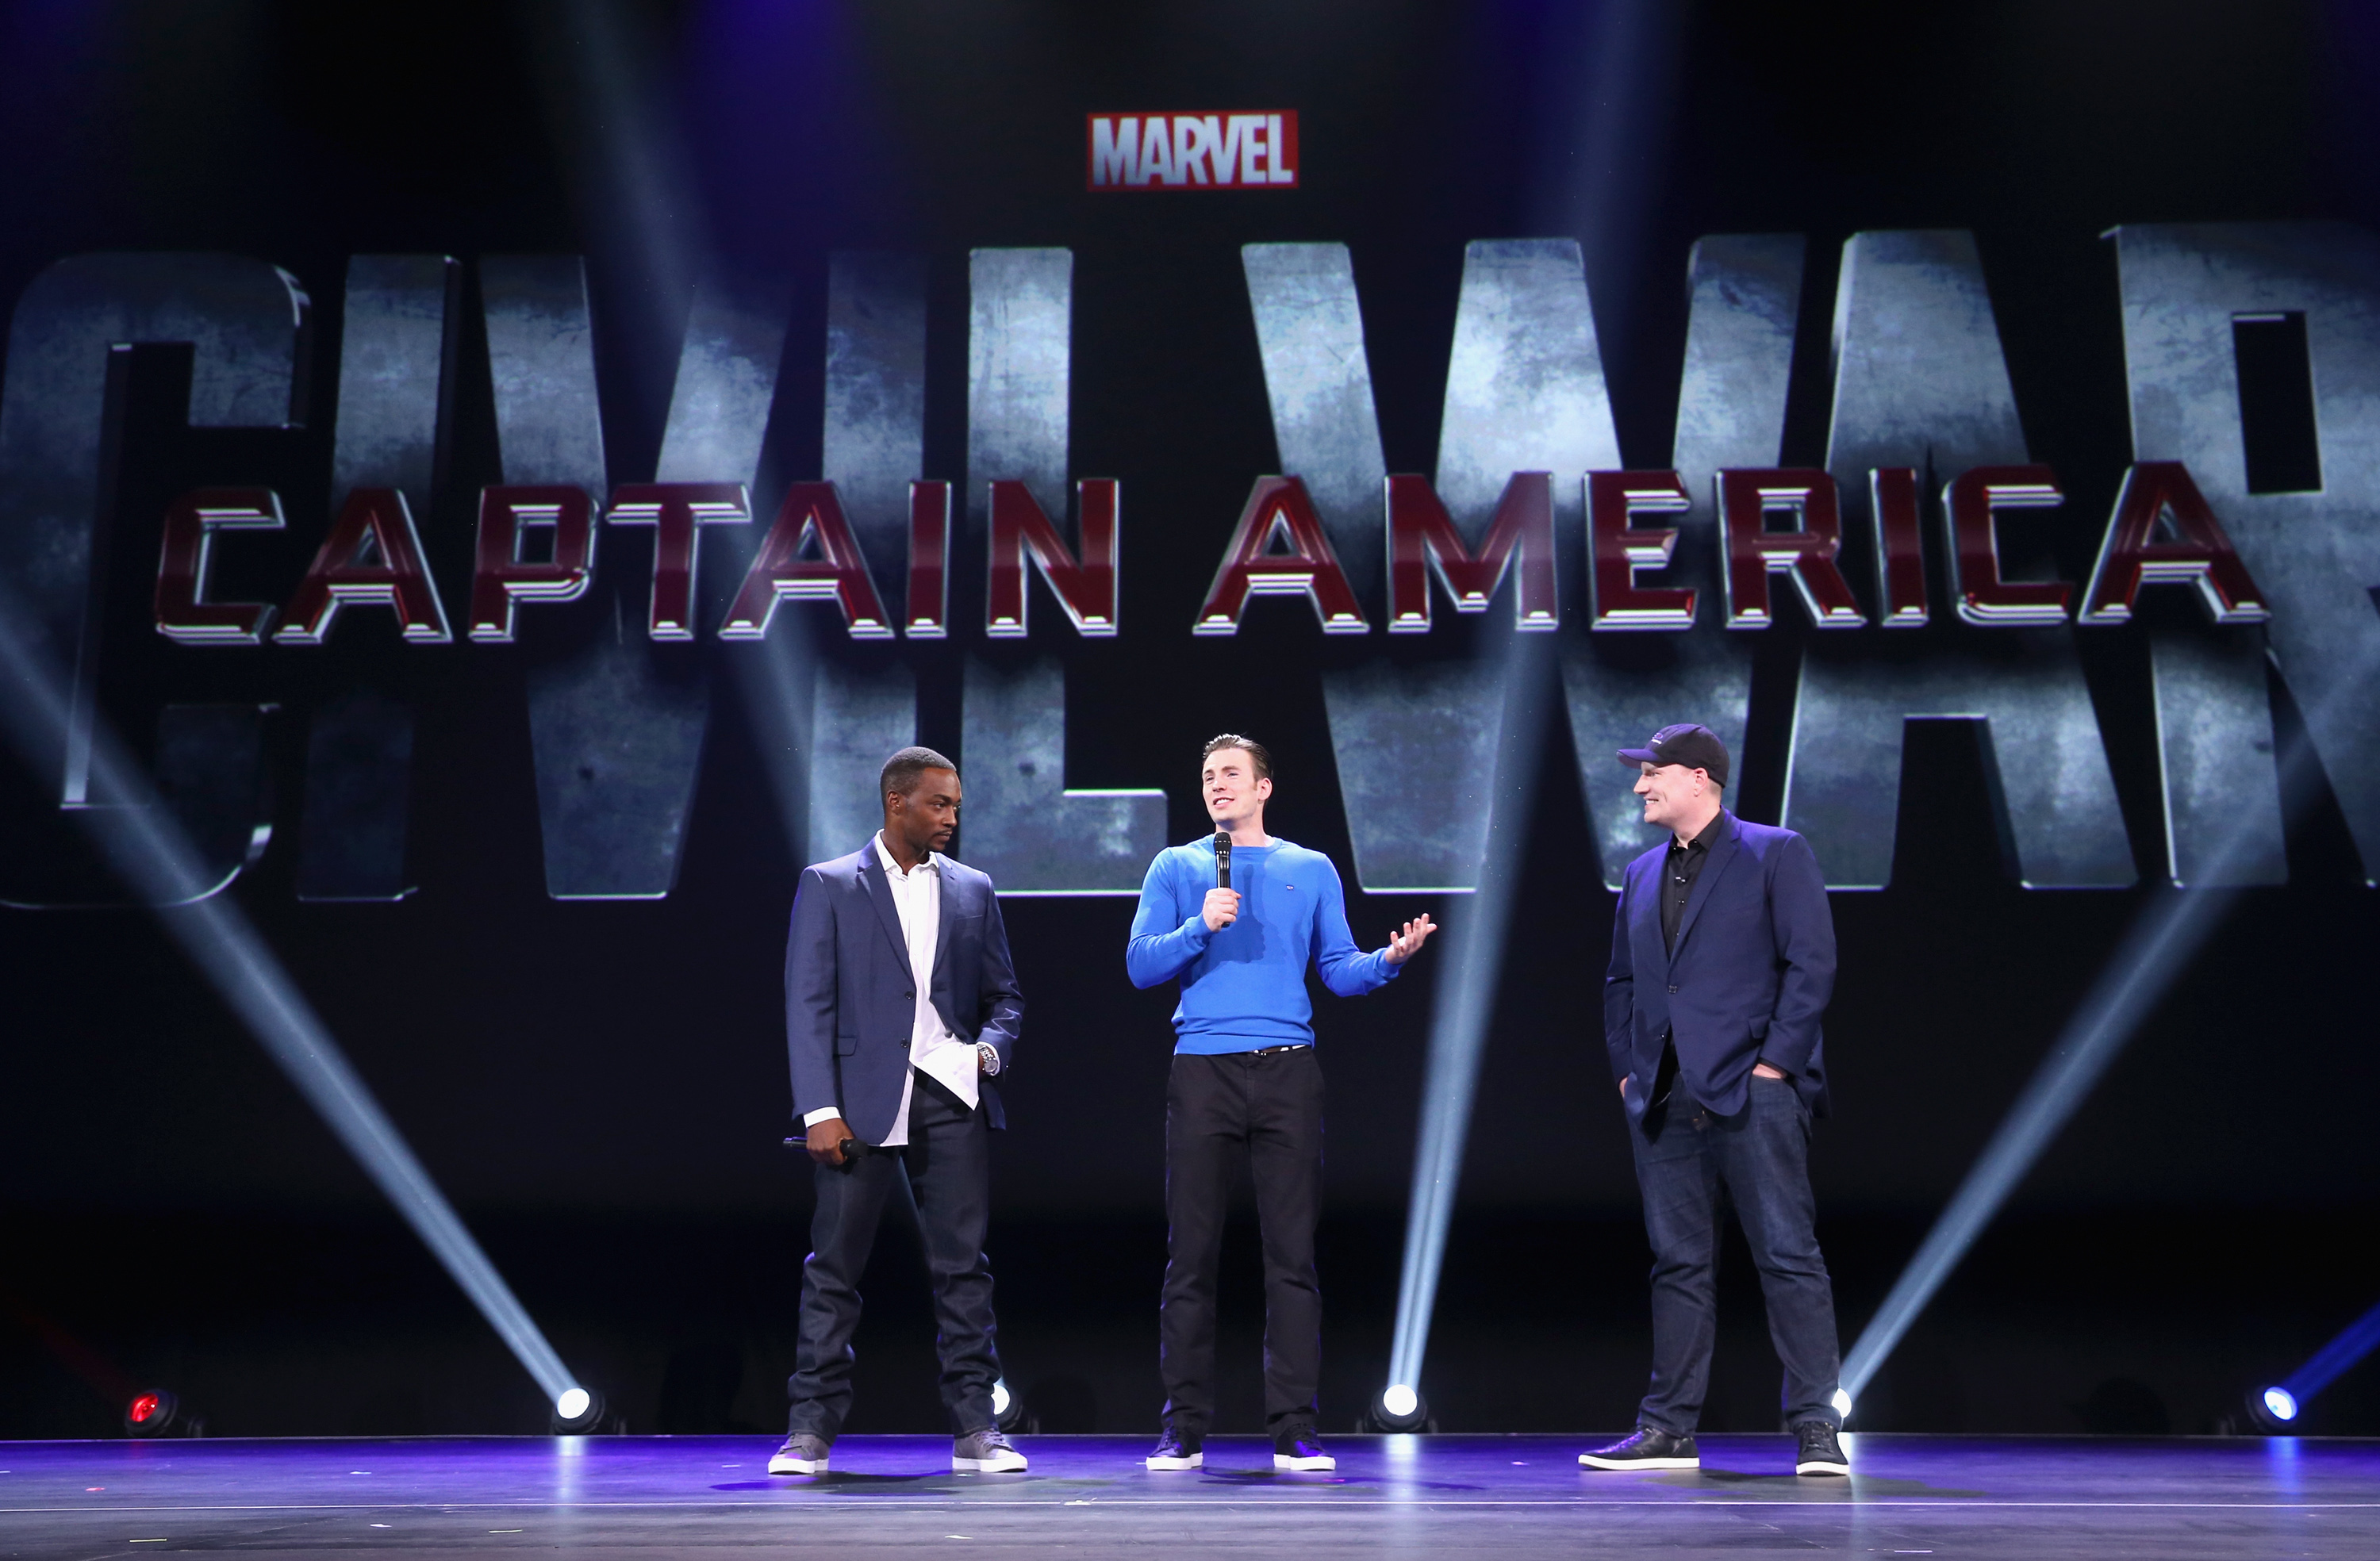 """ANAHEIM, CA - AUGUST 15: (L-R) Actors Anthony Mackie, Chris Evans and Producer Kevin Feige of CAPTAIN AMERICA: CIVIL WAR took part today in """"Worlds, Galaxies, and Universes: Live Action at The Walt Disney Studios"""" presentation at Disney's D23 EXPO 2015 in Anaheim, Calif.   Jesse Grant/Getty Images for Disney/AFP"""